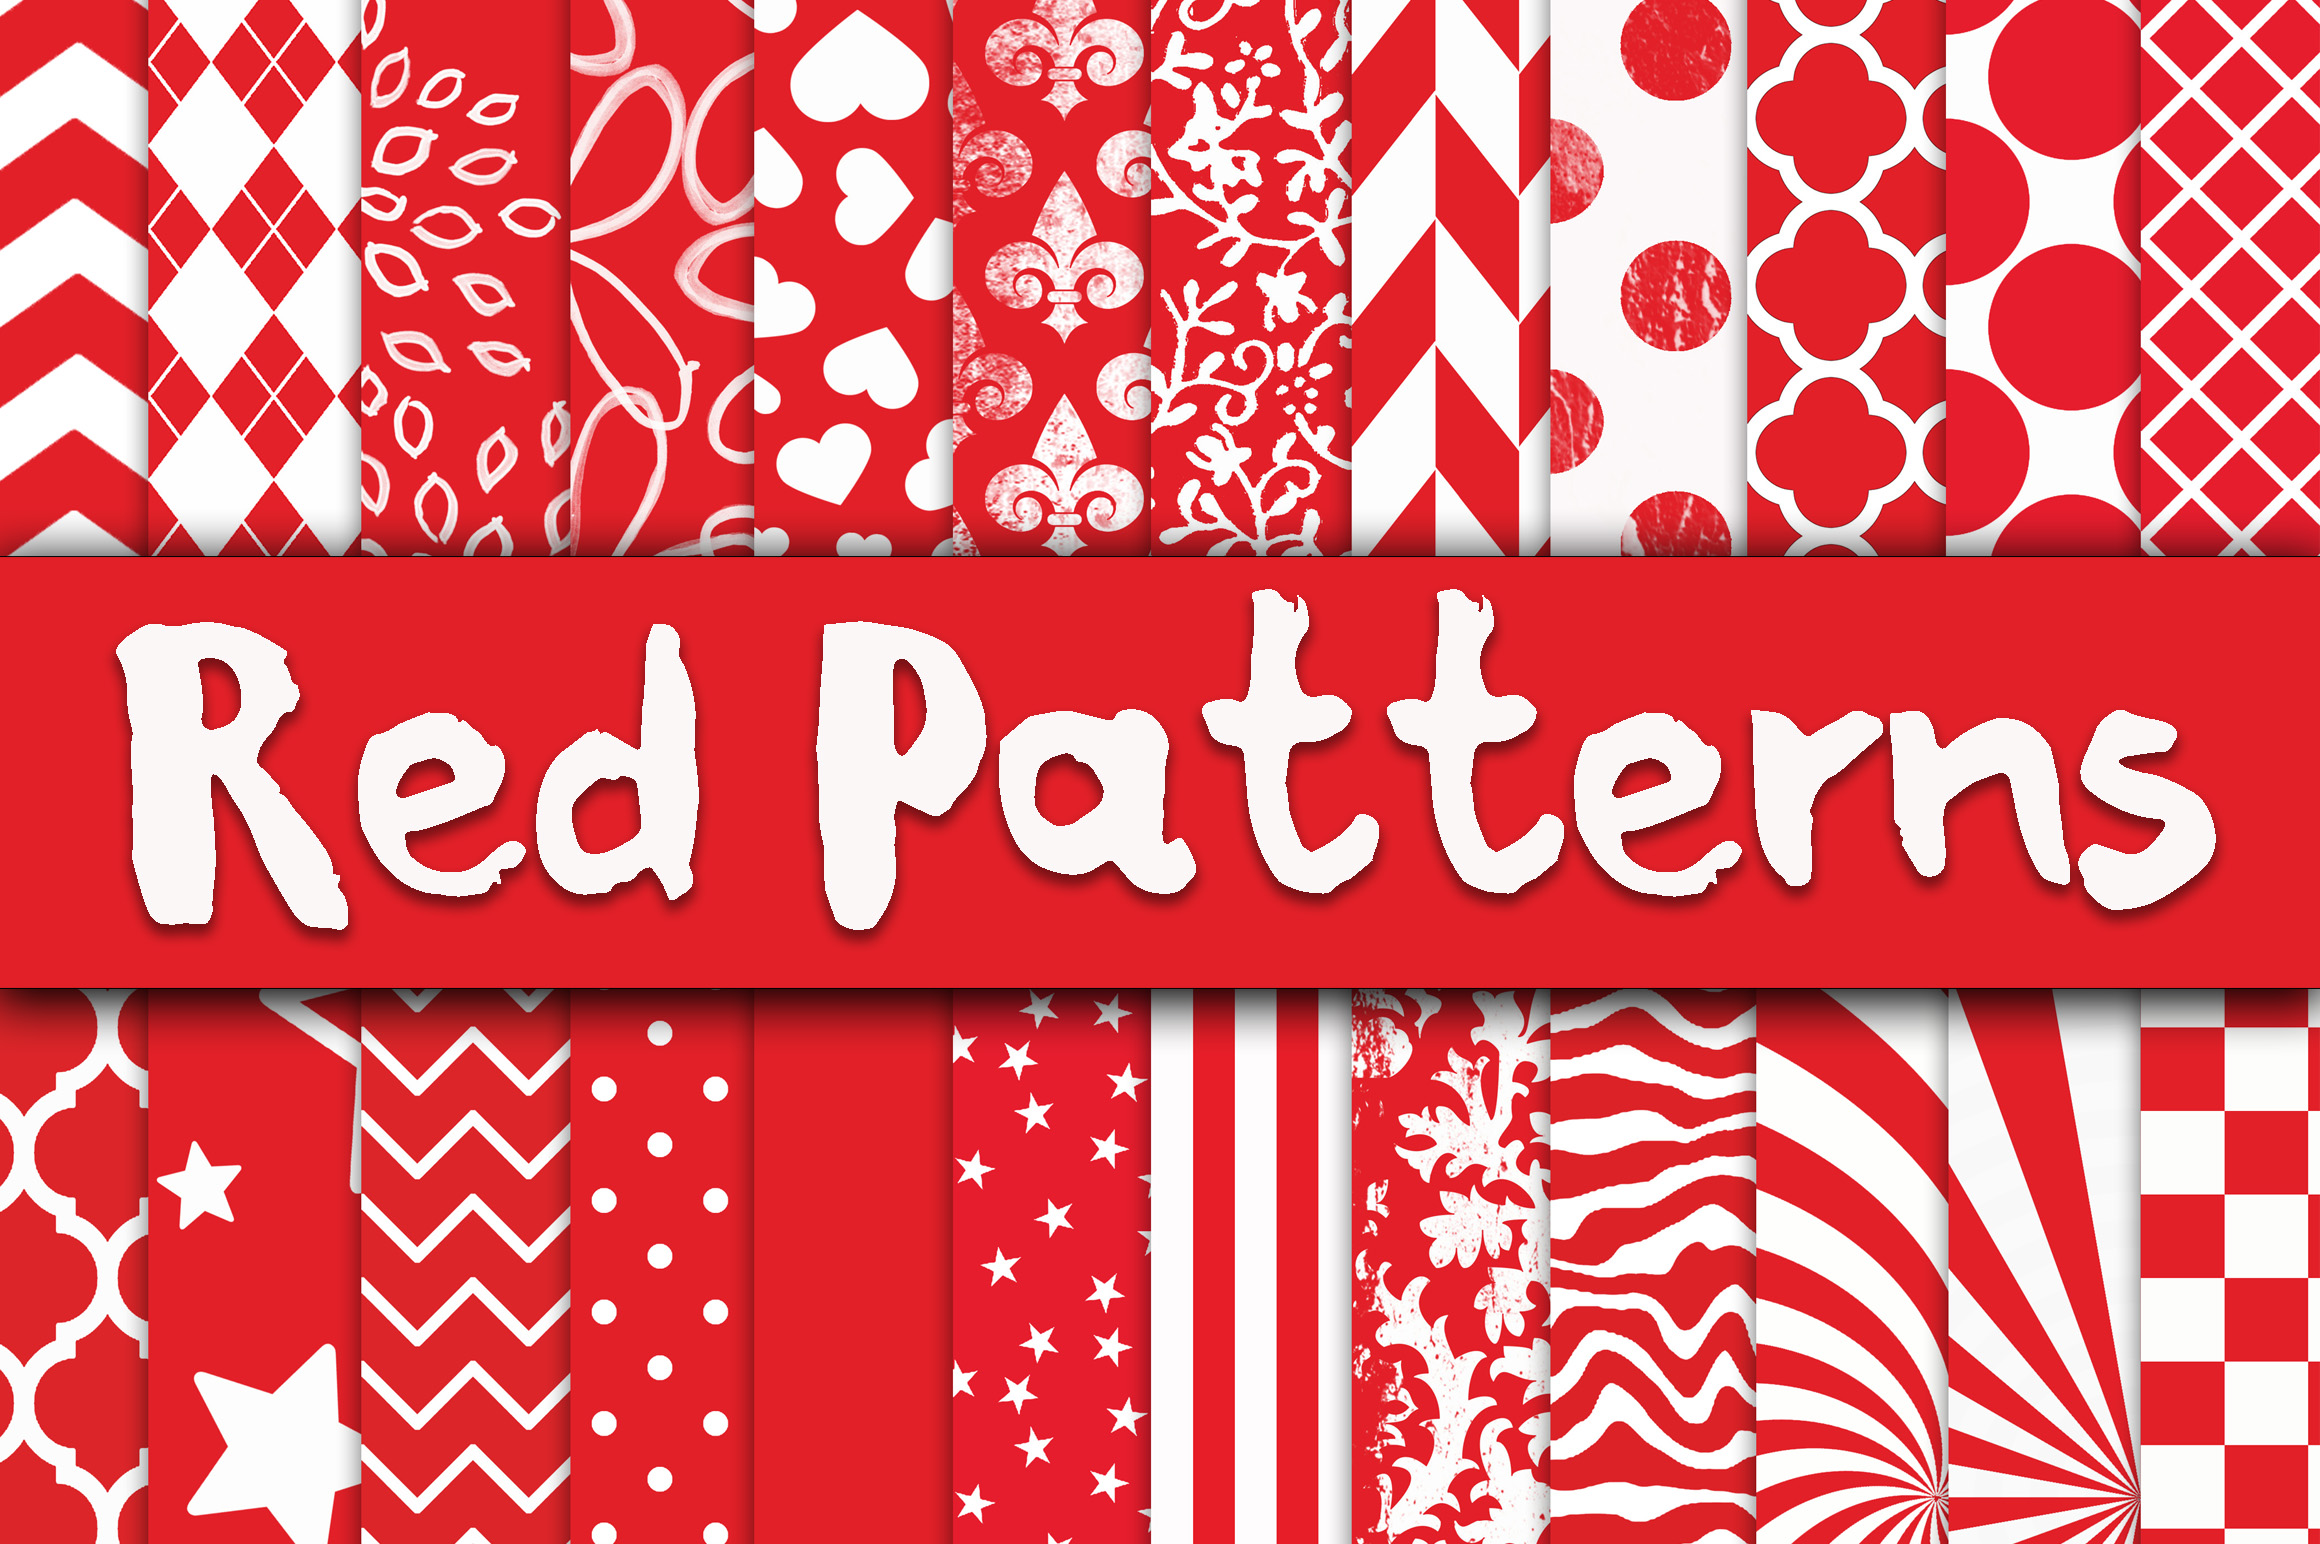 Red Patterns Digital Paper Graphic By oldmarketdesigns